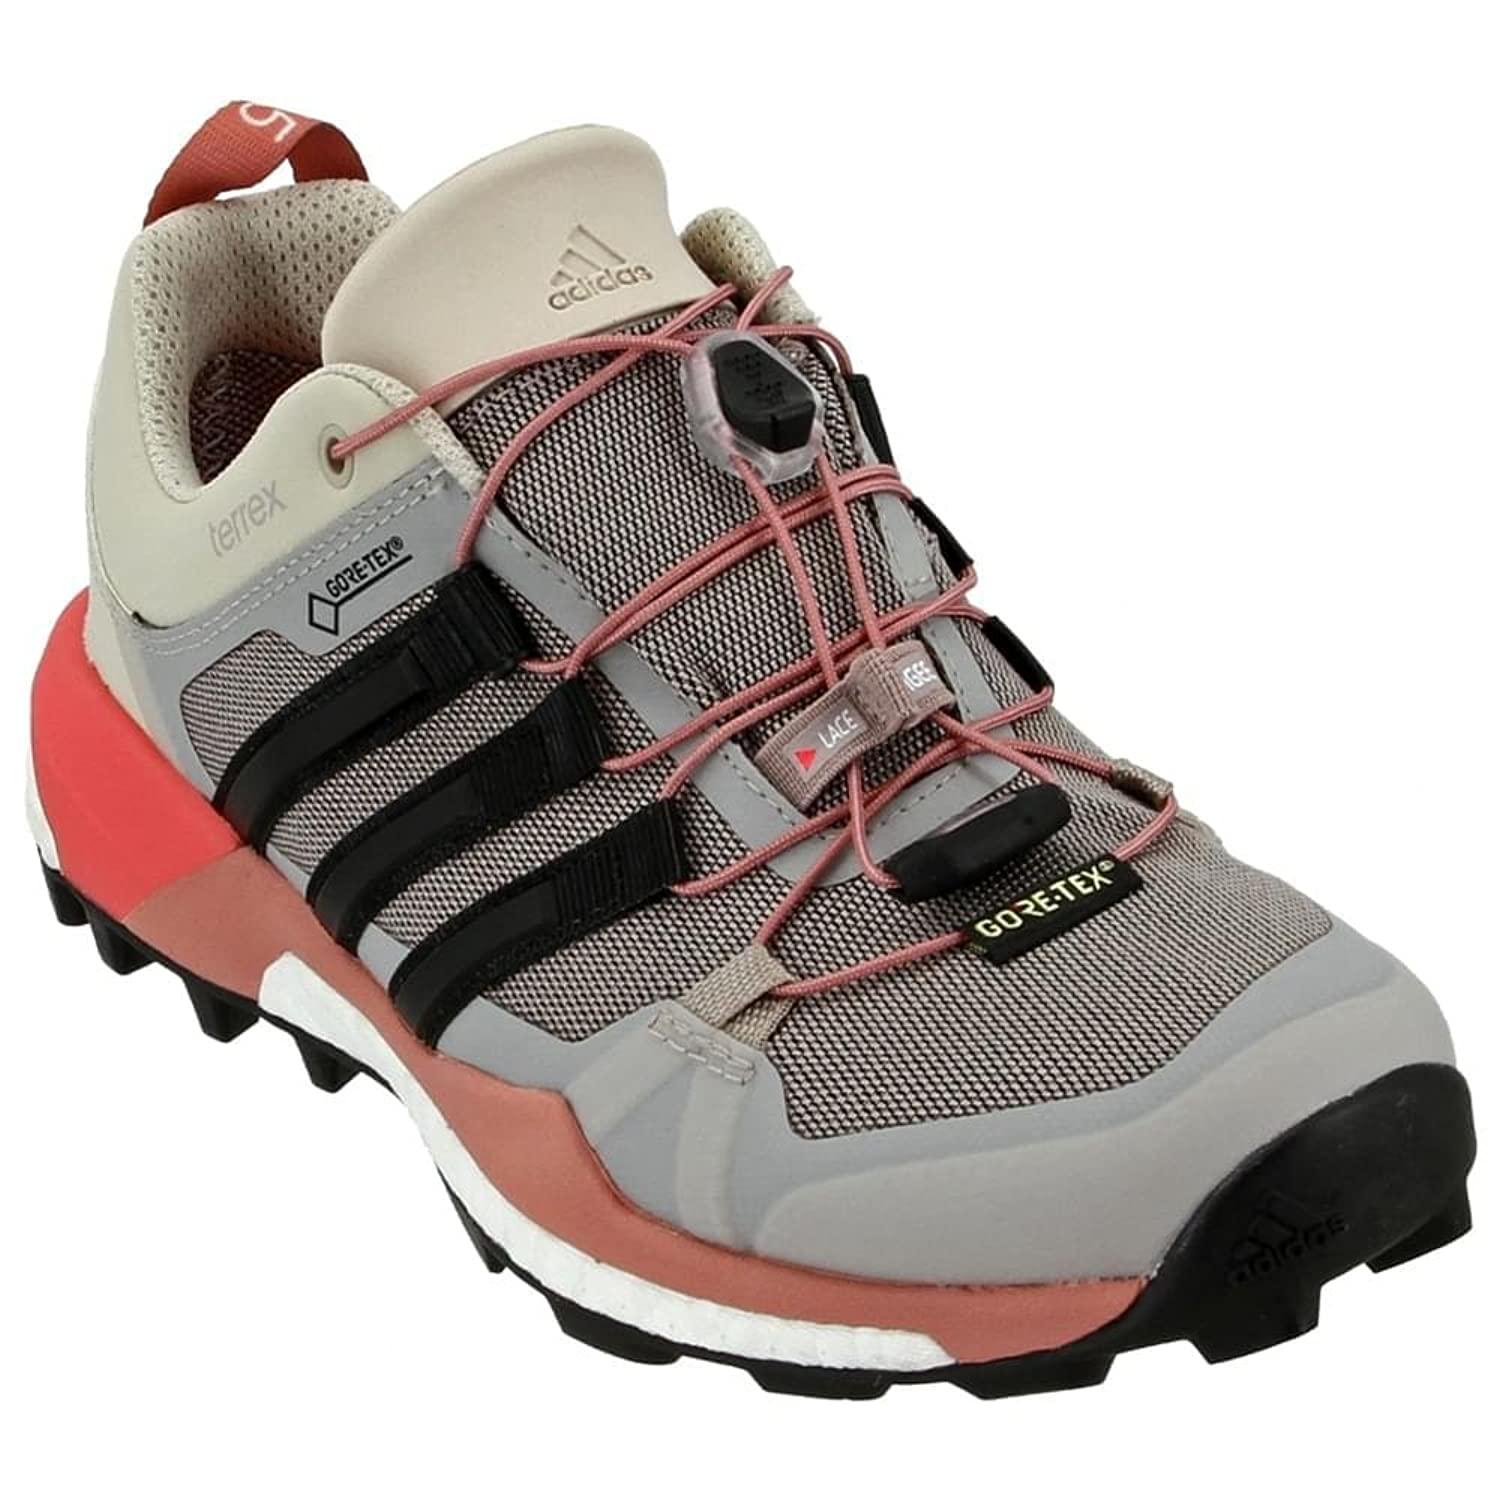 Adidas AF5989 Womens Terrex Skychaser GTX Shoes